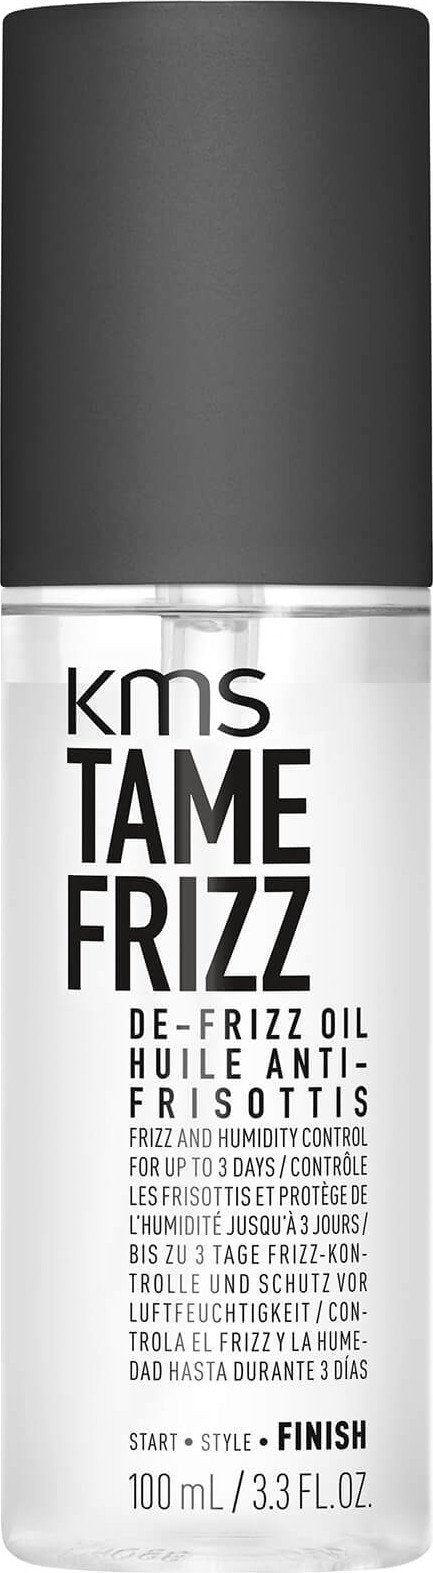 KMS TAMEFRIZZ DE-FRIZZ OIL